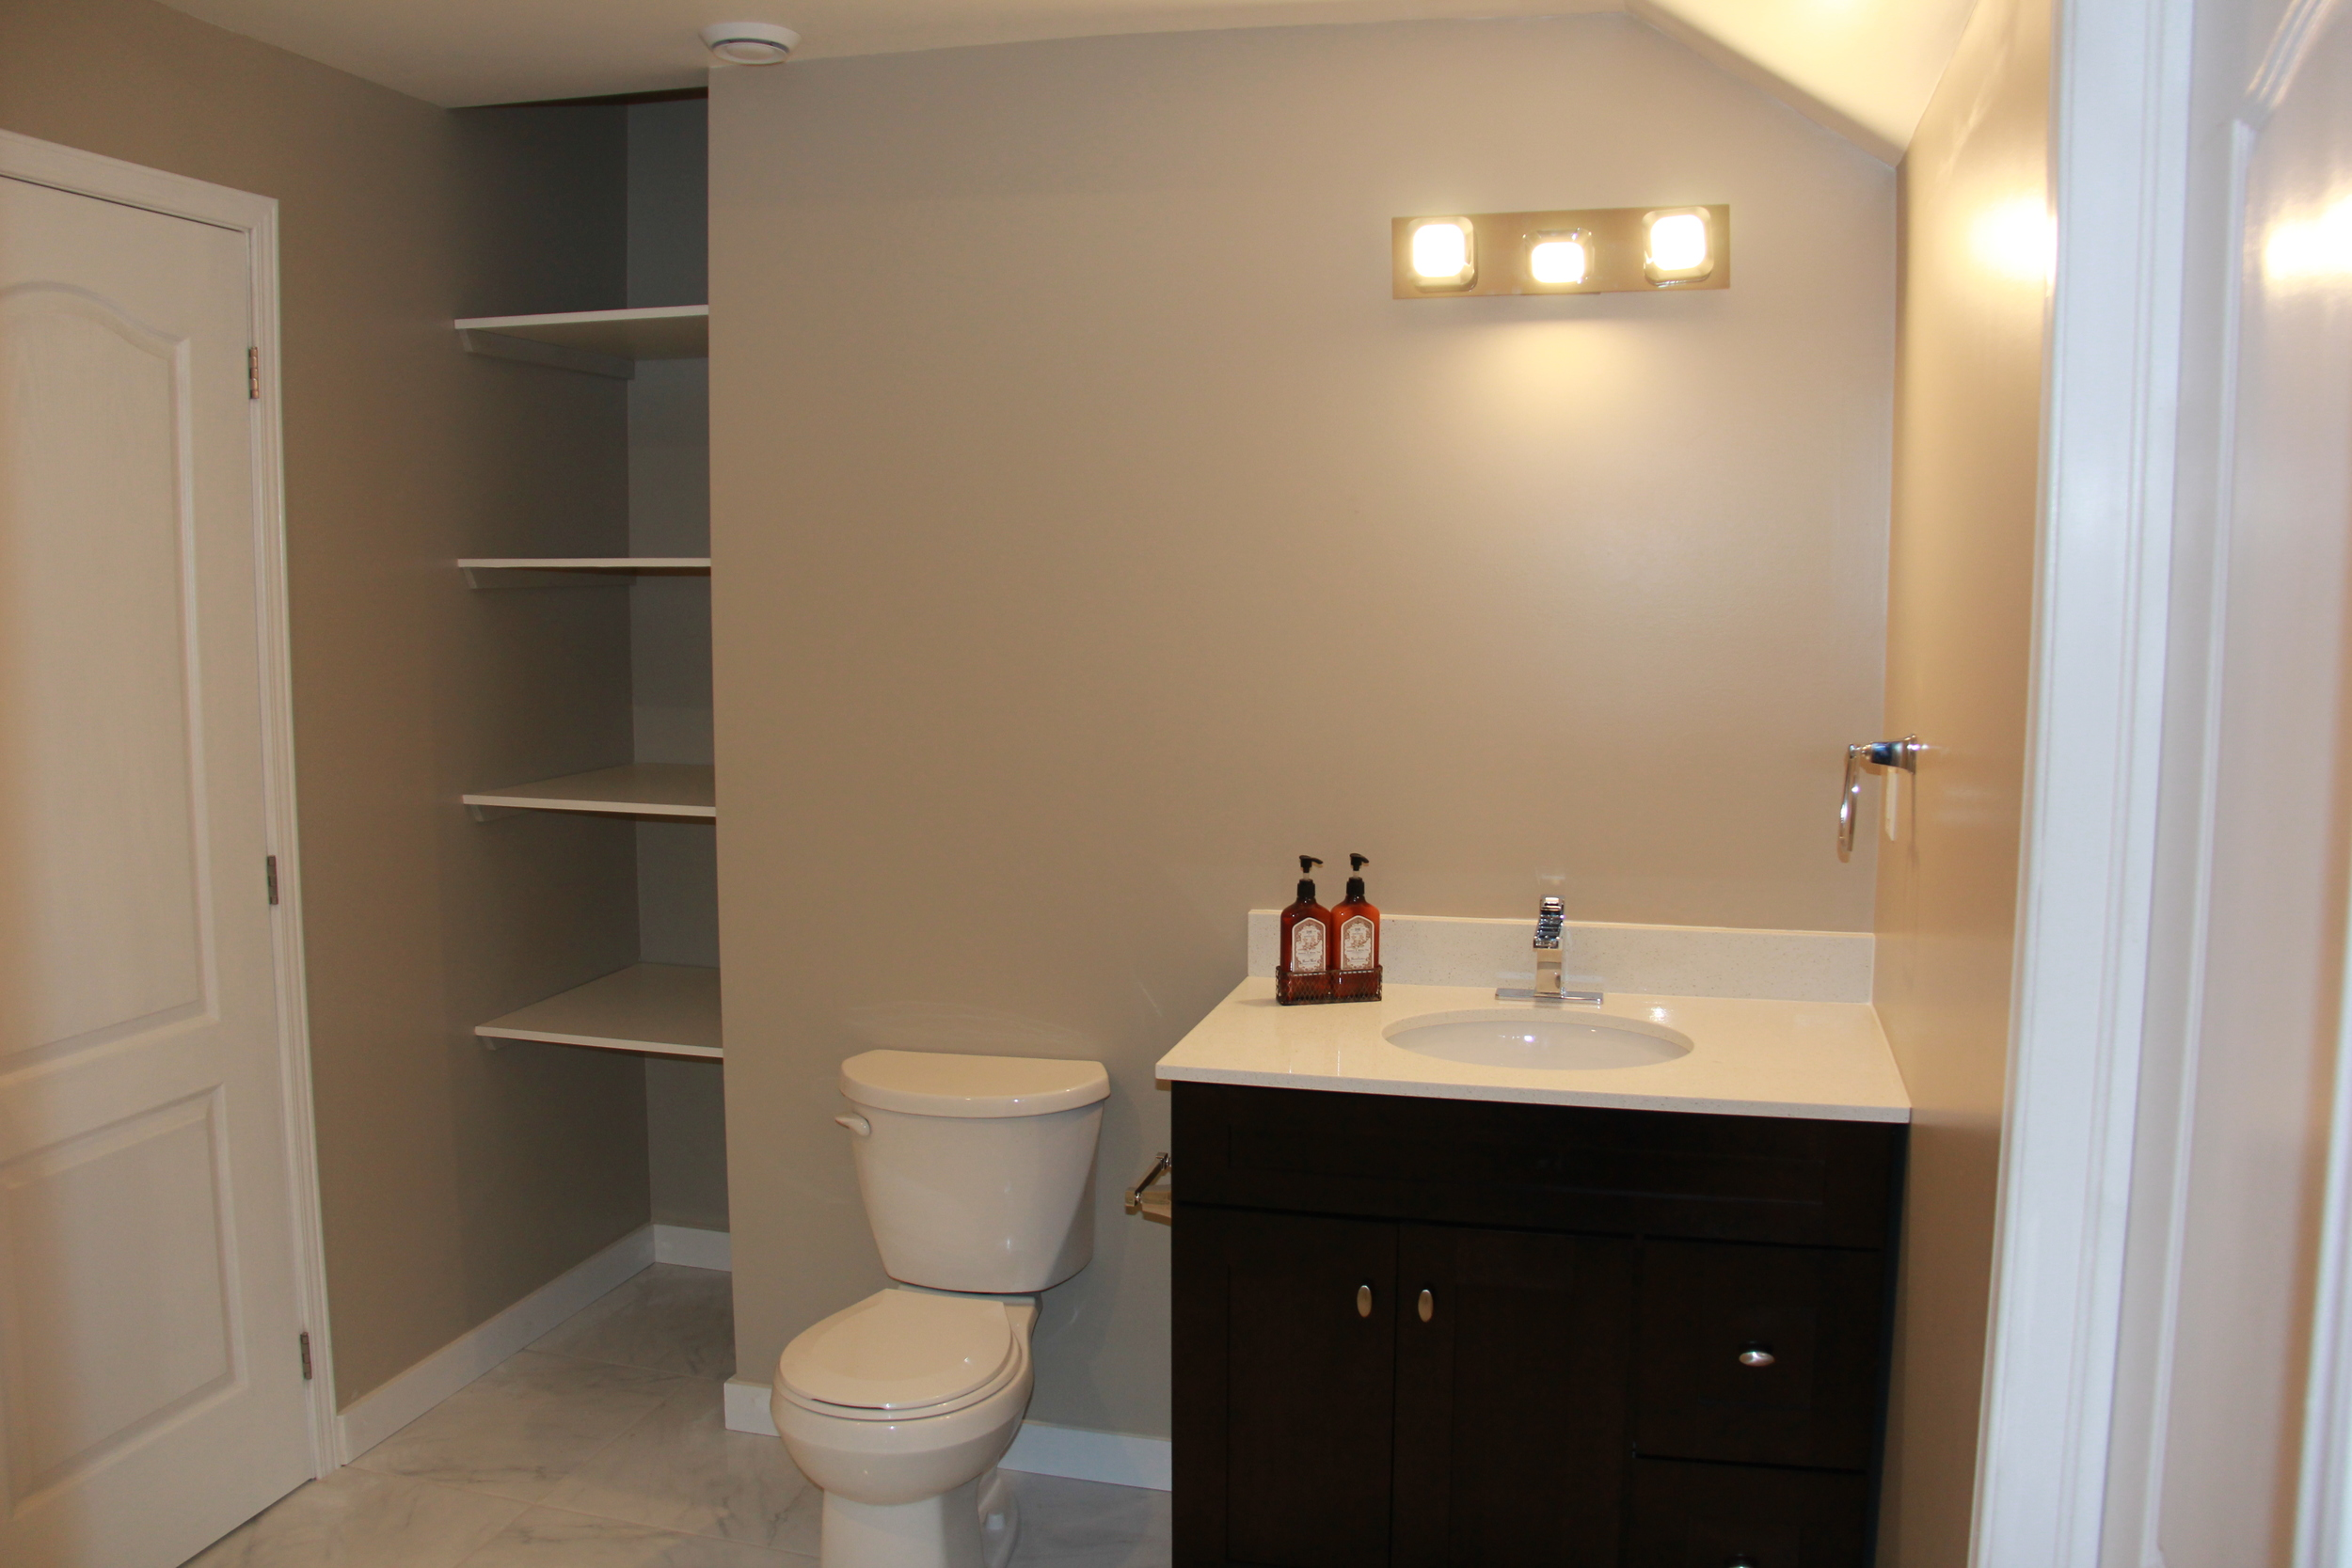 38 1162 Escala Final Pictures with Canon - Washroom Vanity.JPG